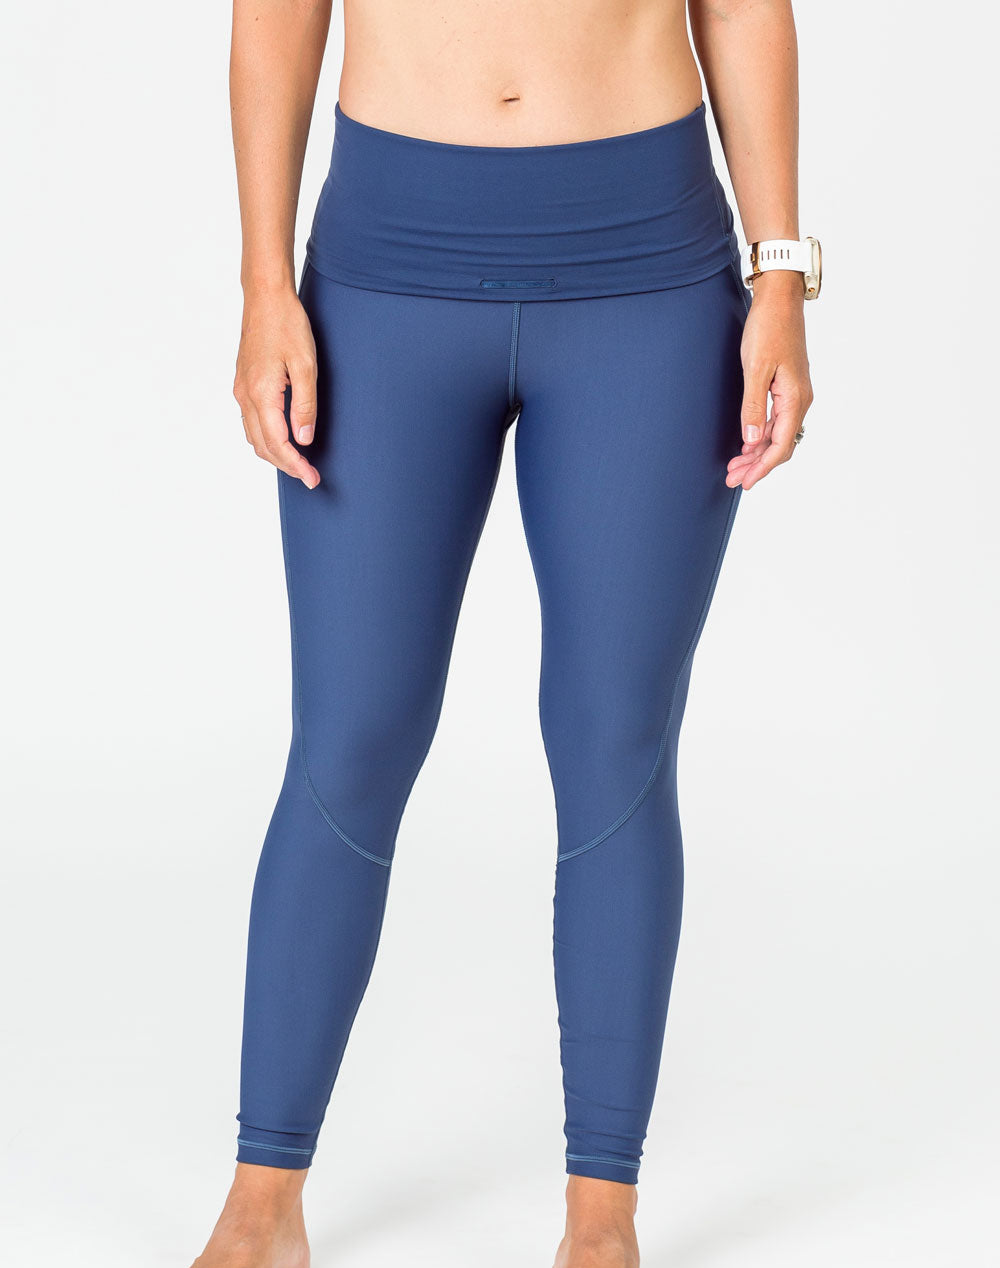 Maternity Leggings - Classic Full Length Bondi Blue